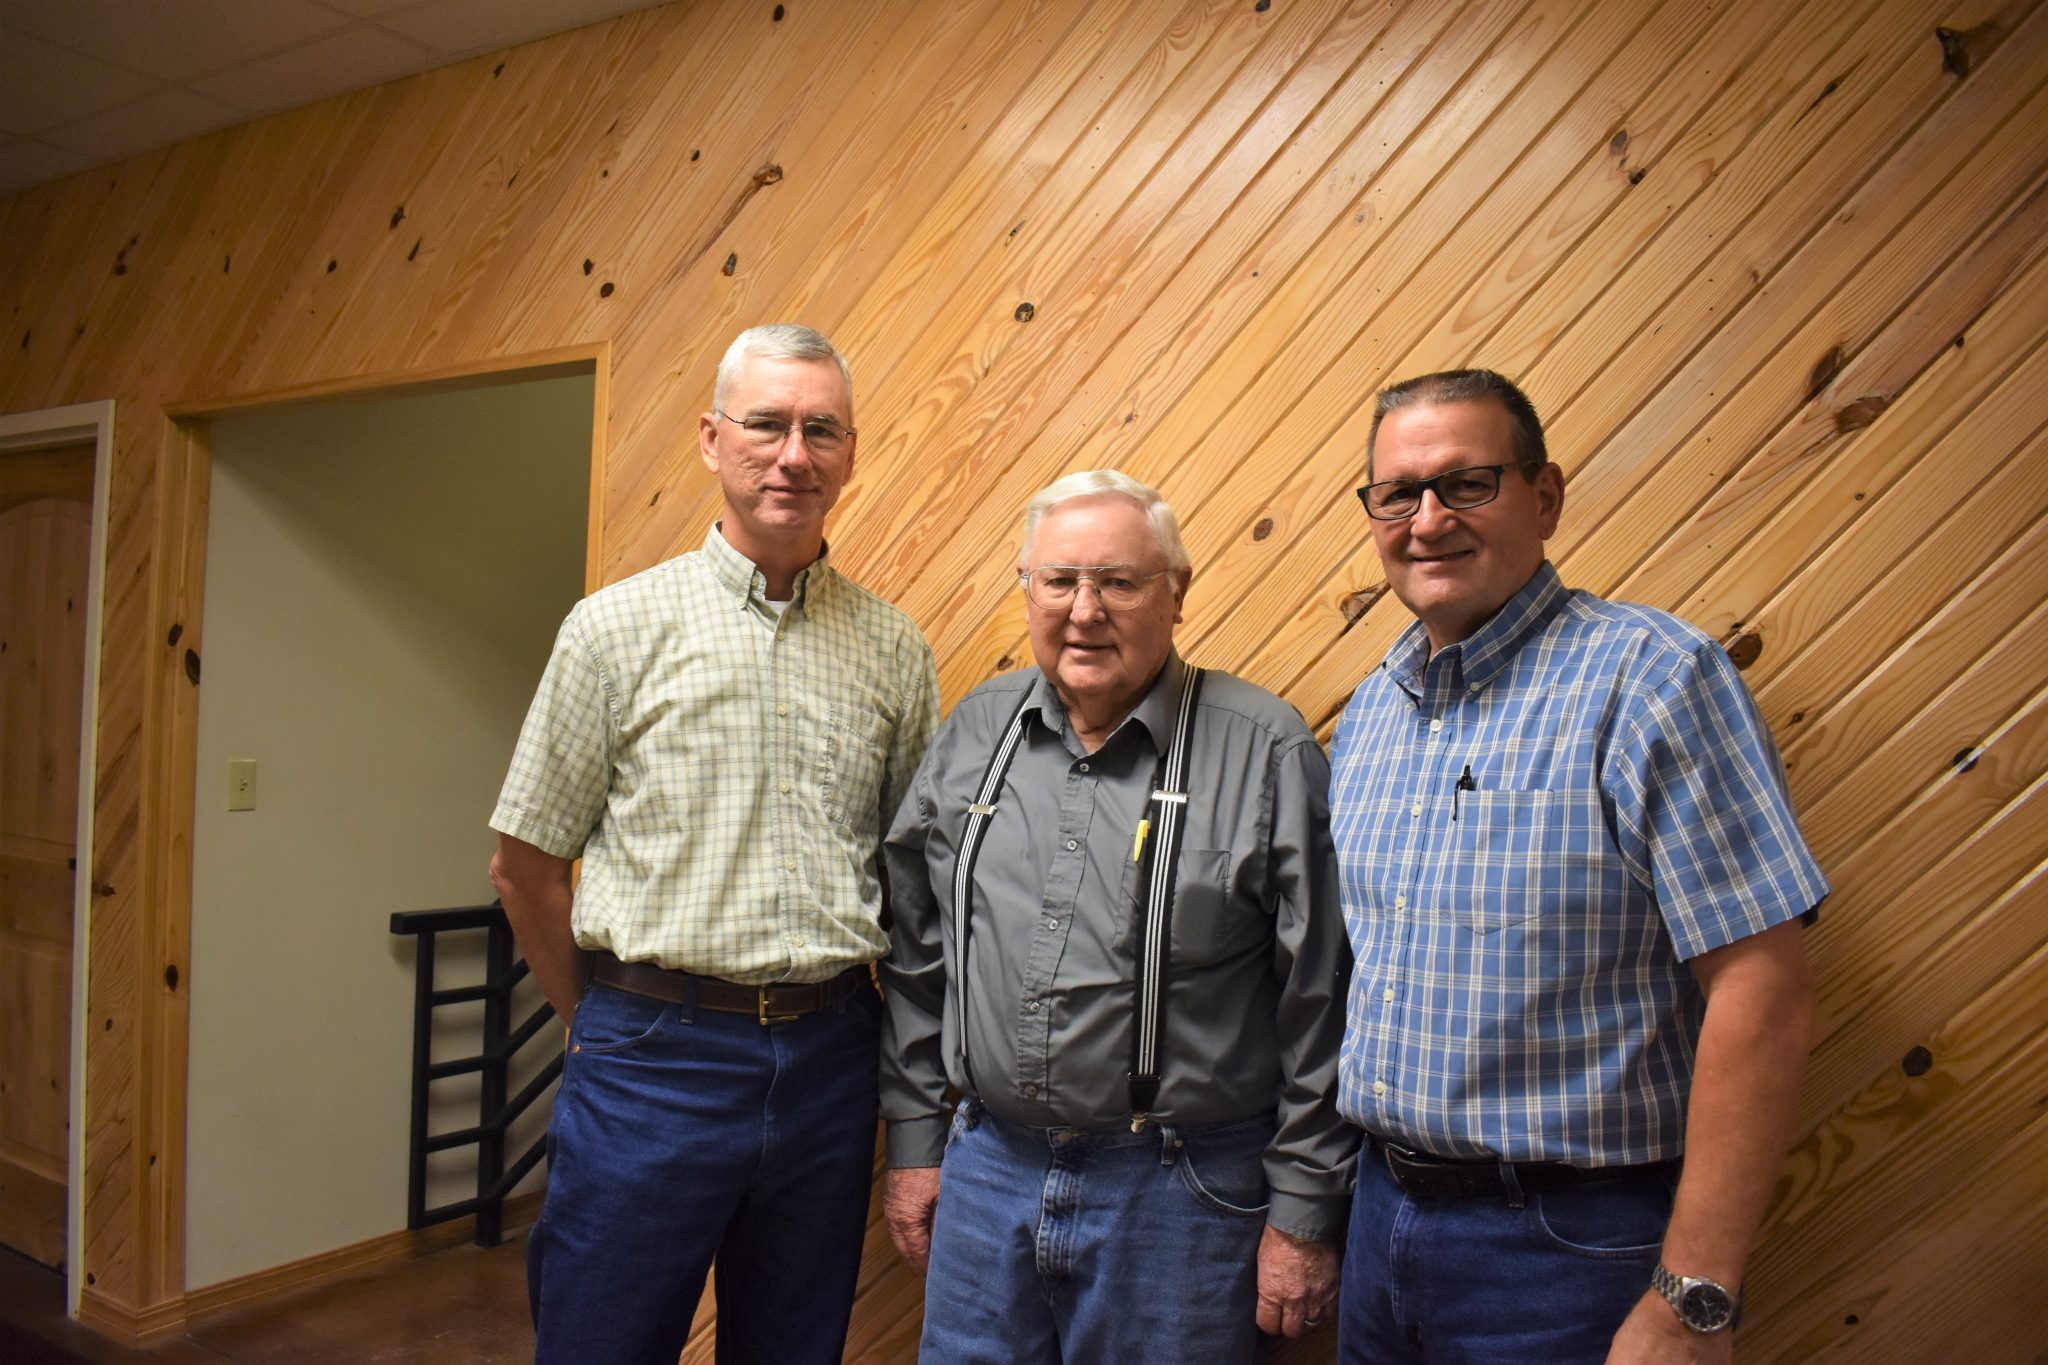 Church Elders Mark Roberson, James McEachern, Denny Hokit